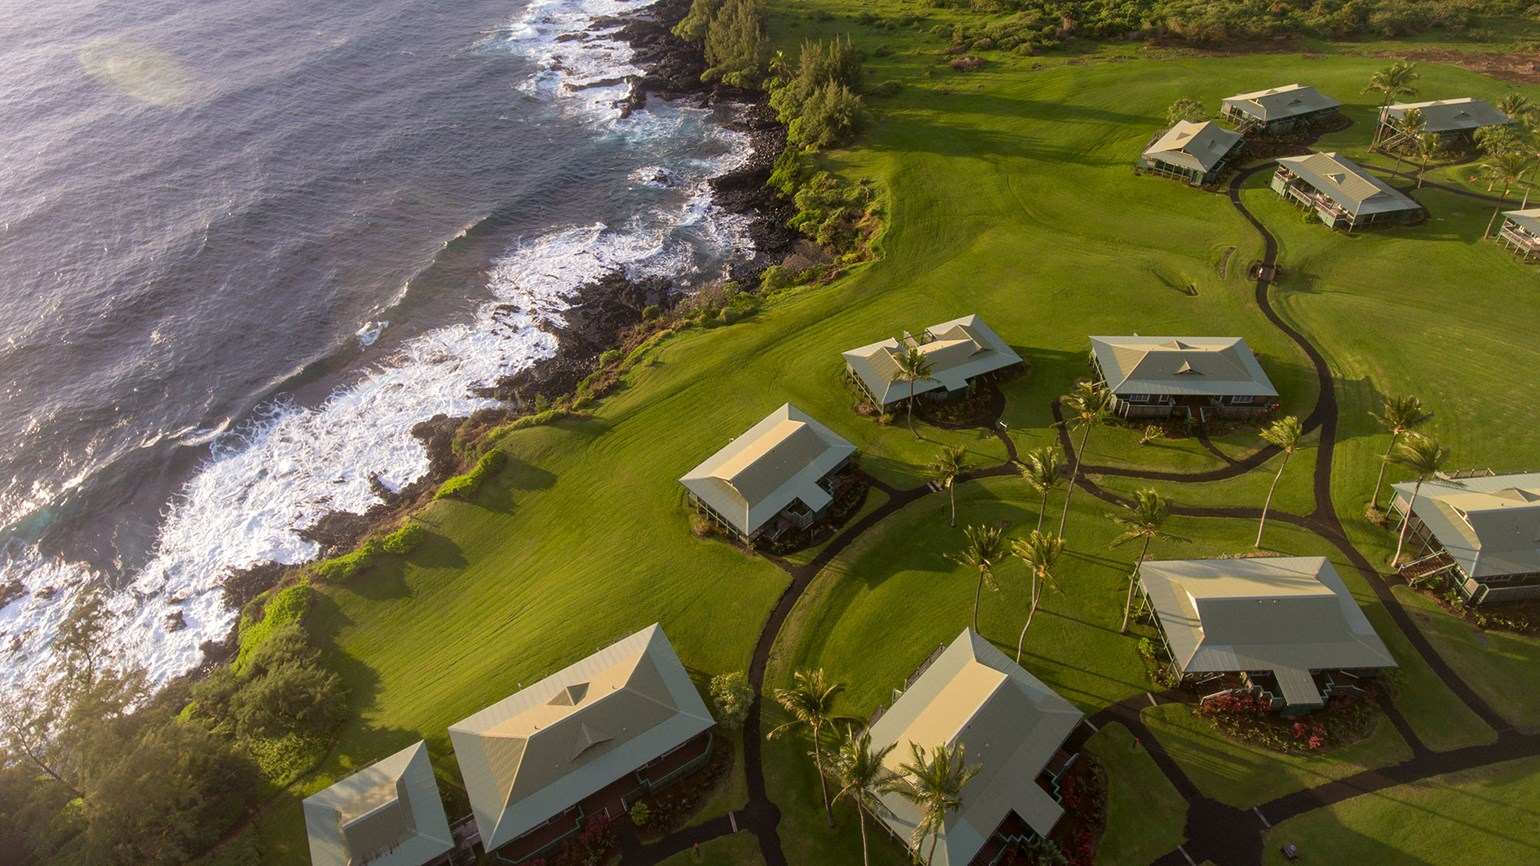 A transitional year for the Hana-Maui Resort